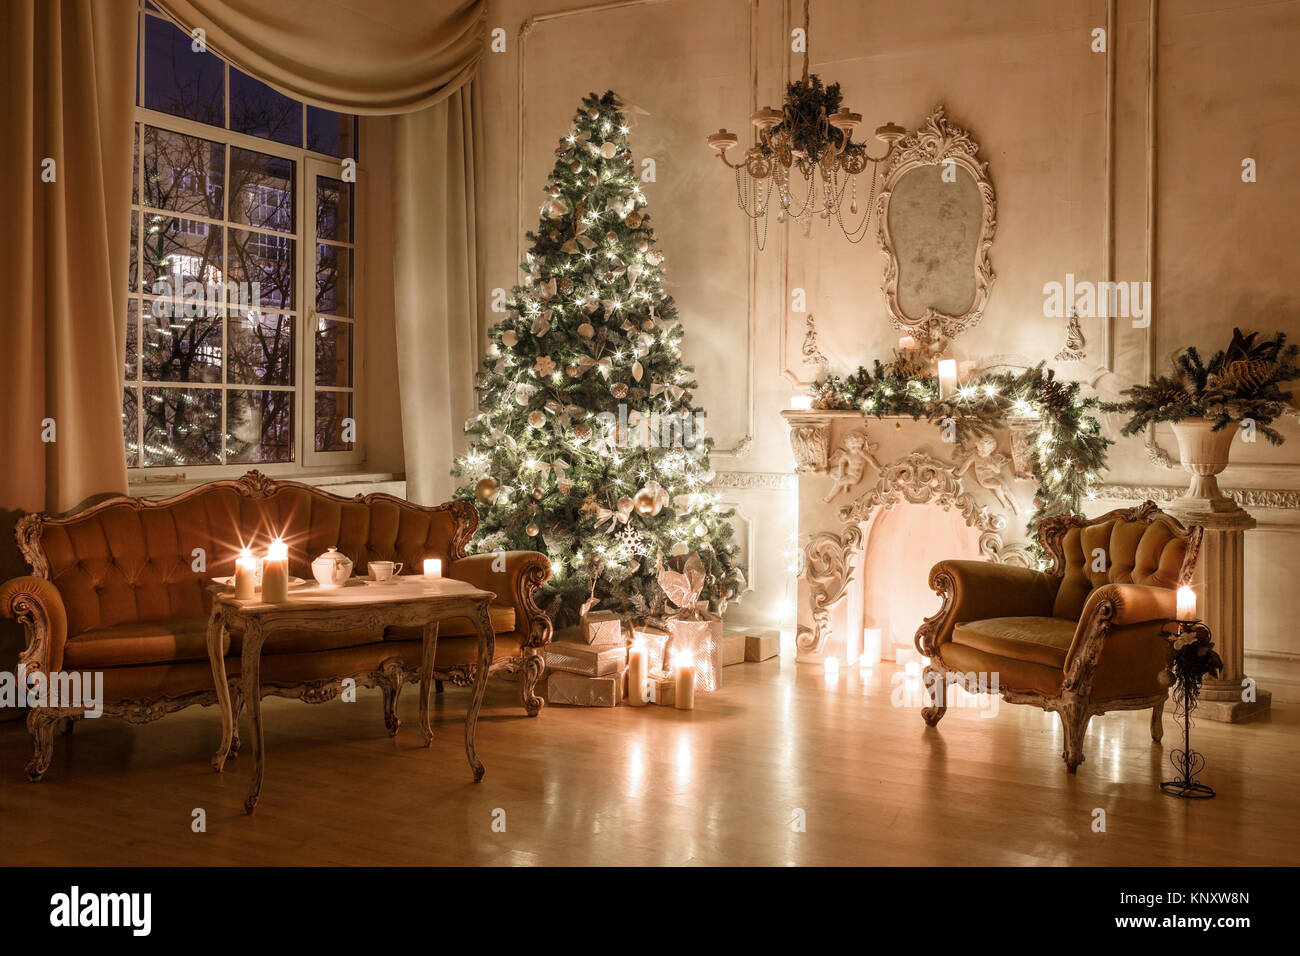 Christmas evening by candlelight. classic apartments with a white fireplace, decorated tree, sofa, large windows Stock Photo